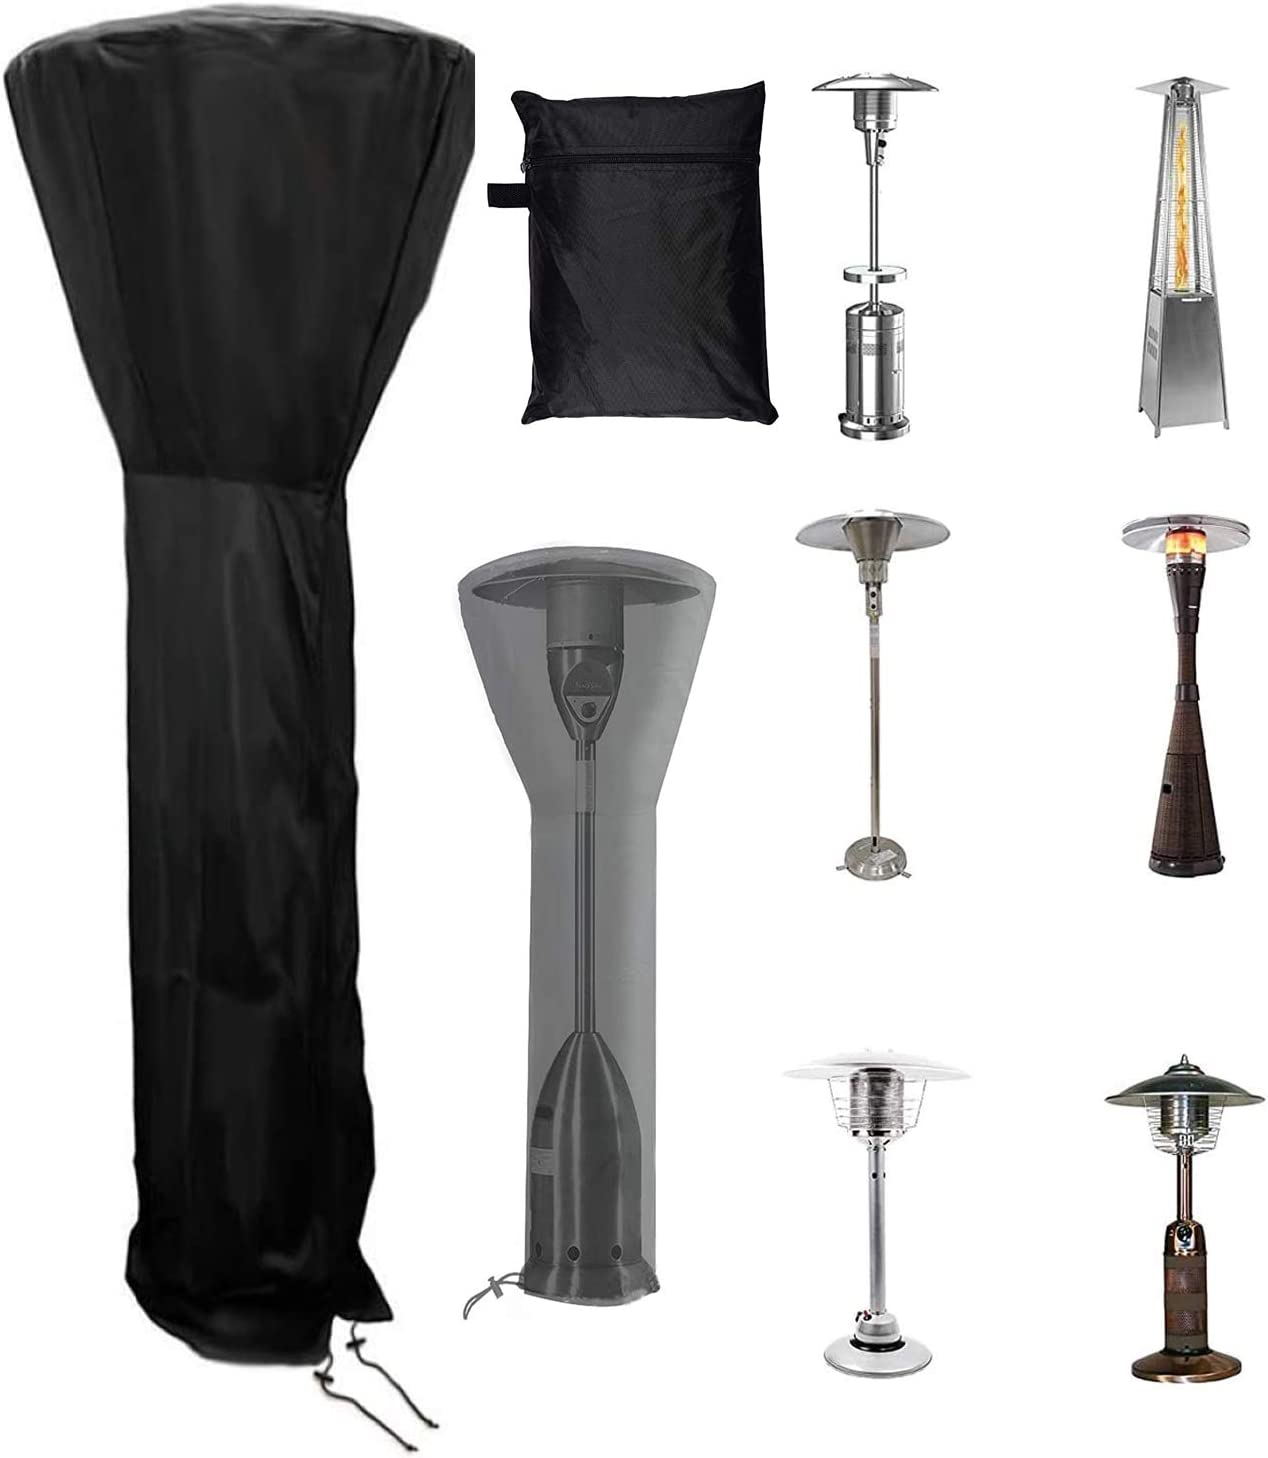 DEARLIVES Patio Heater Cover Award-winning store Waterproof Seasonal Wrap Introduction with Zipper